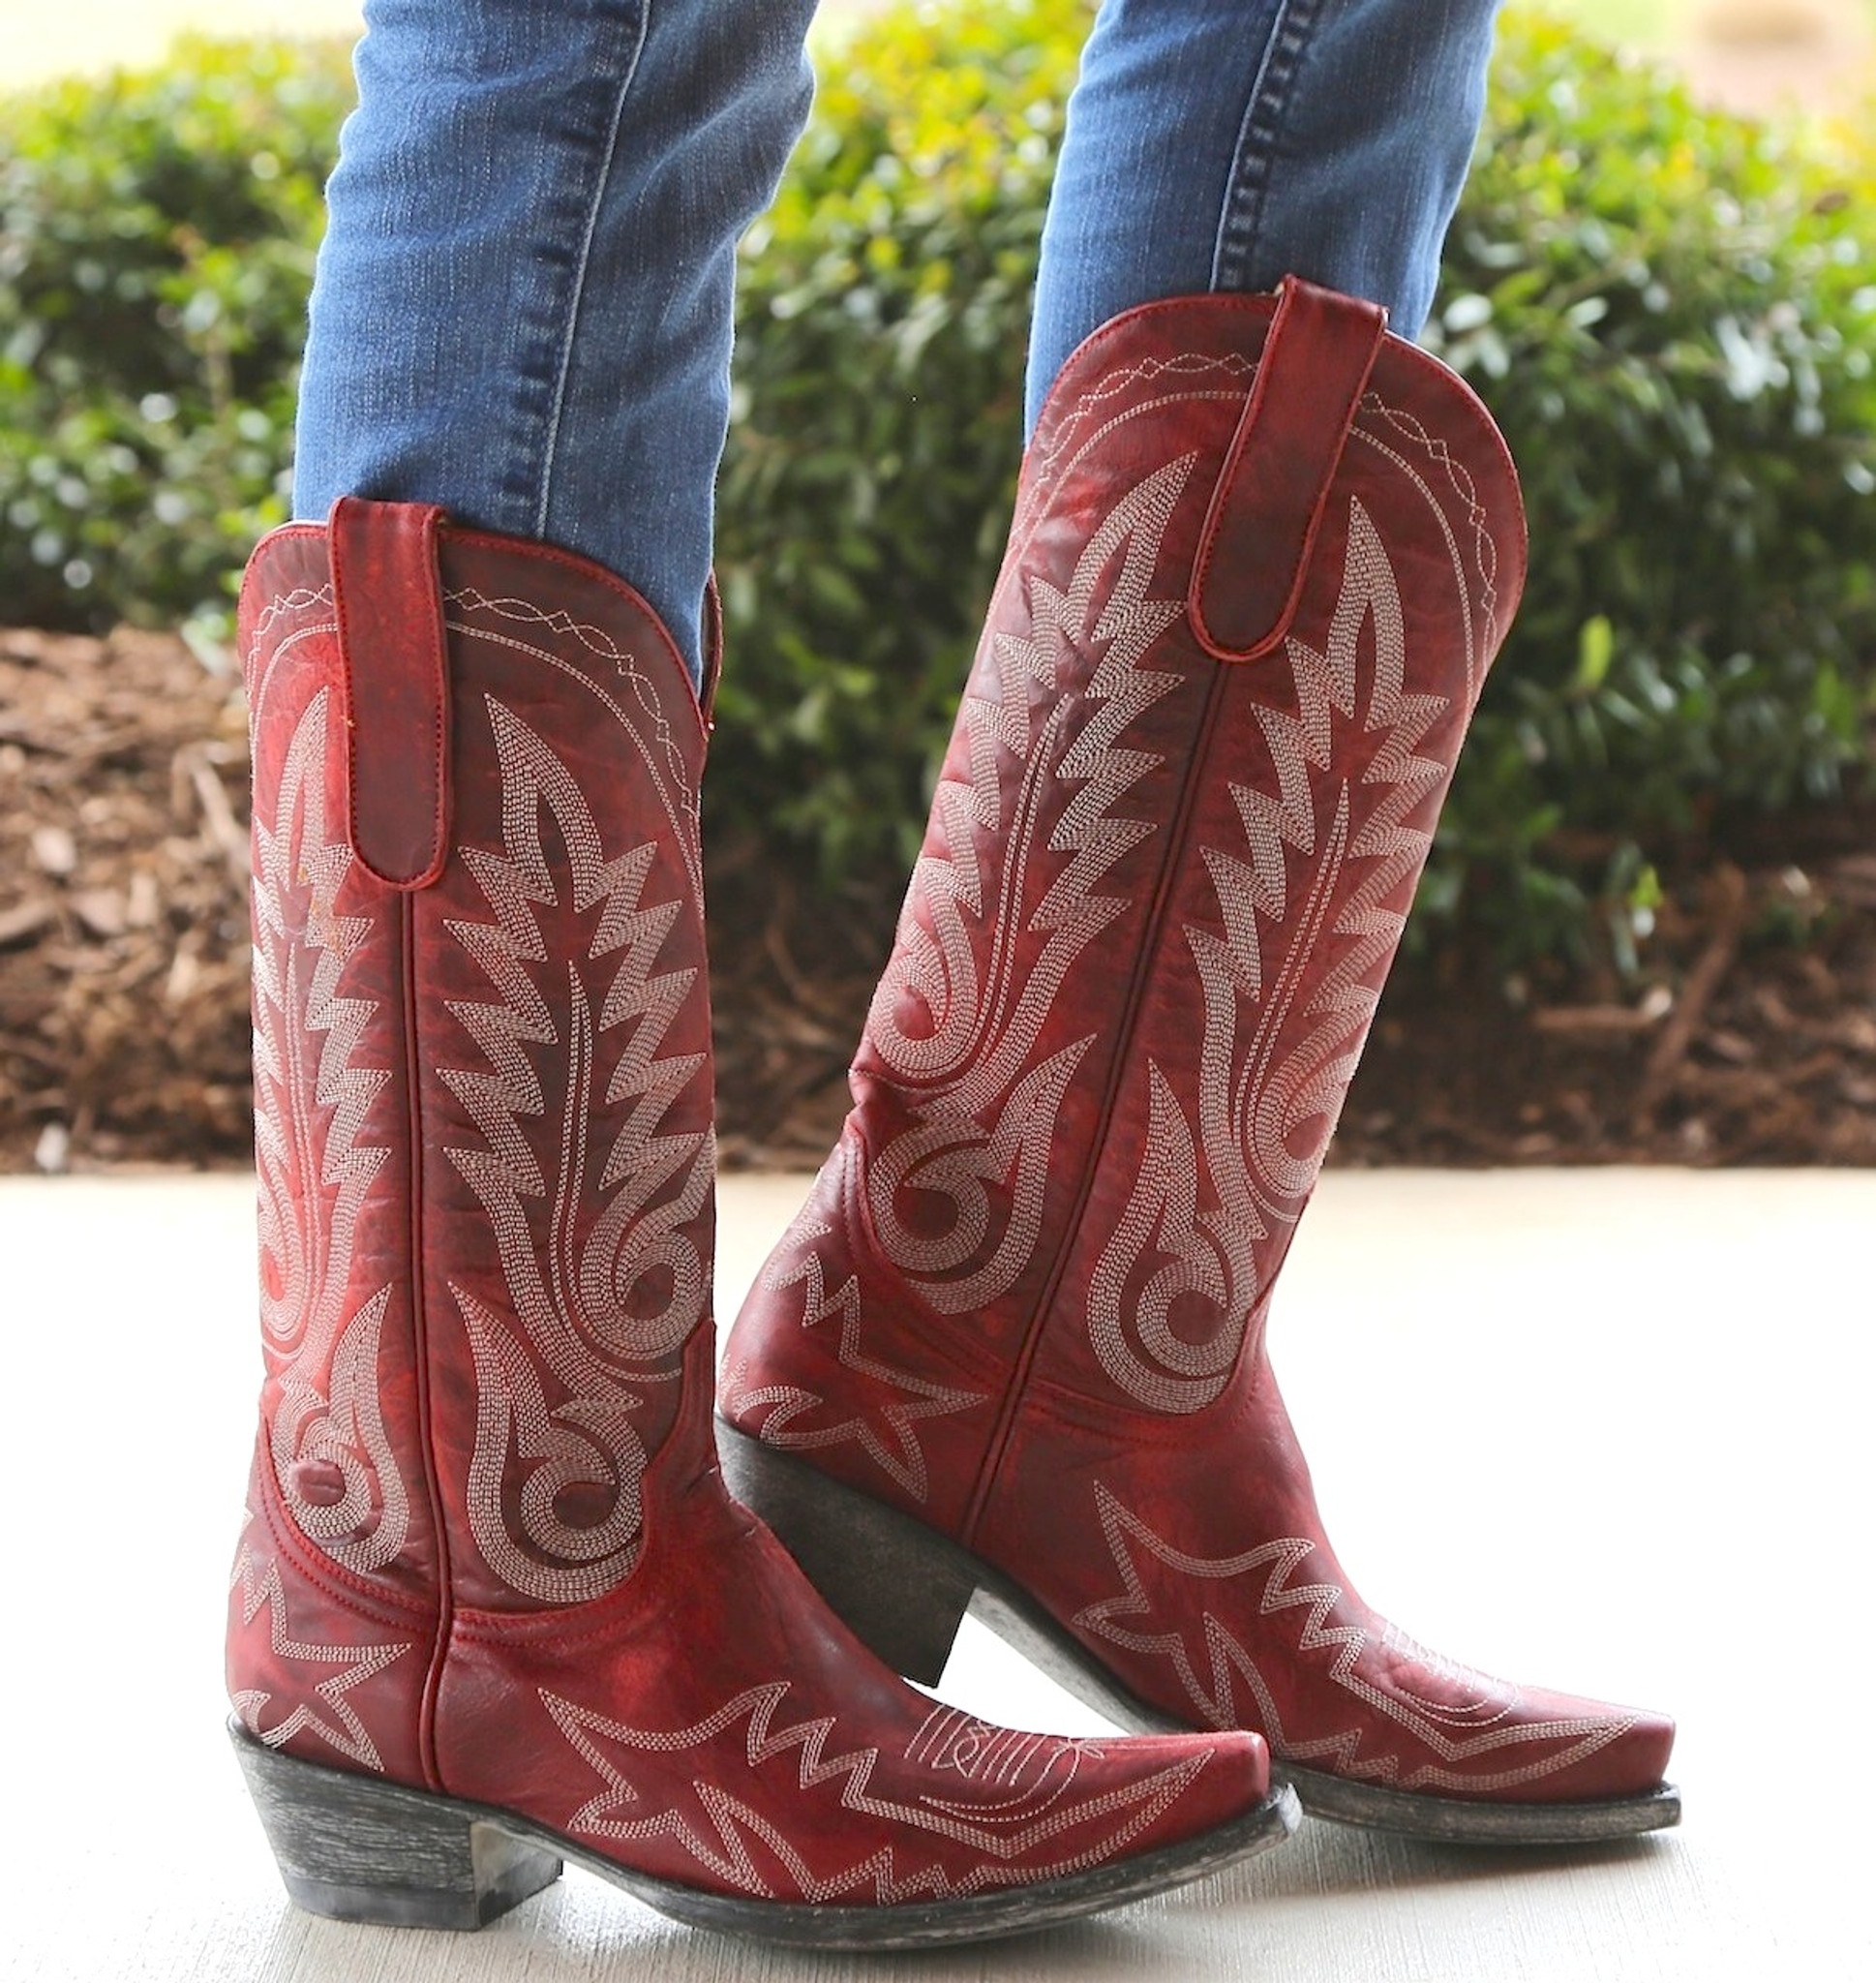 Old Gringo Boots Nevada Red | Old